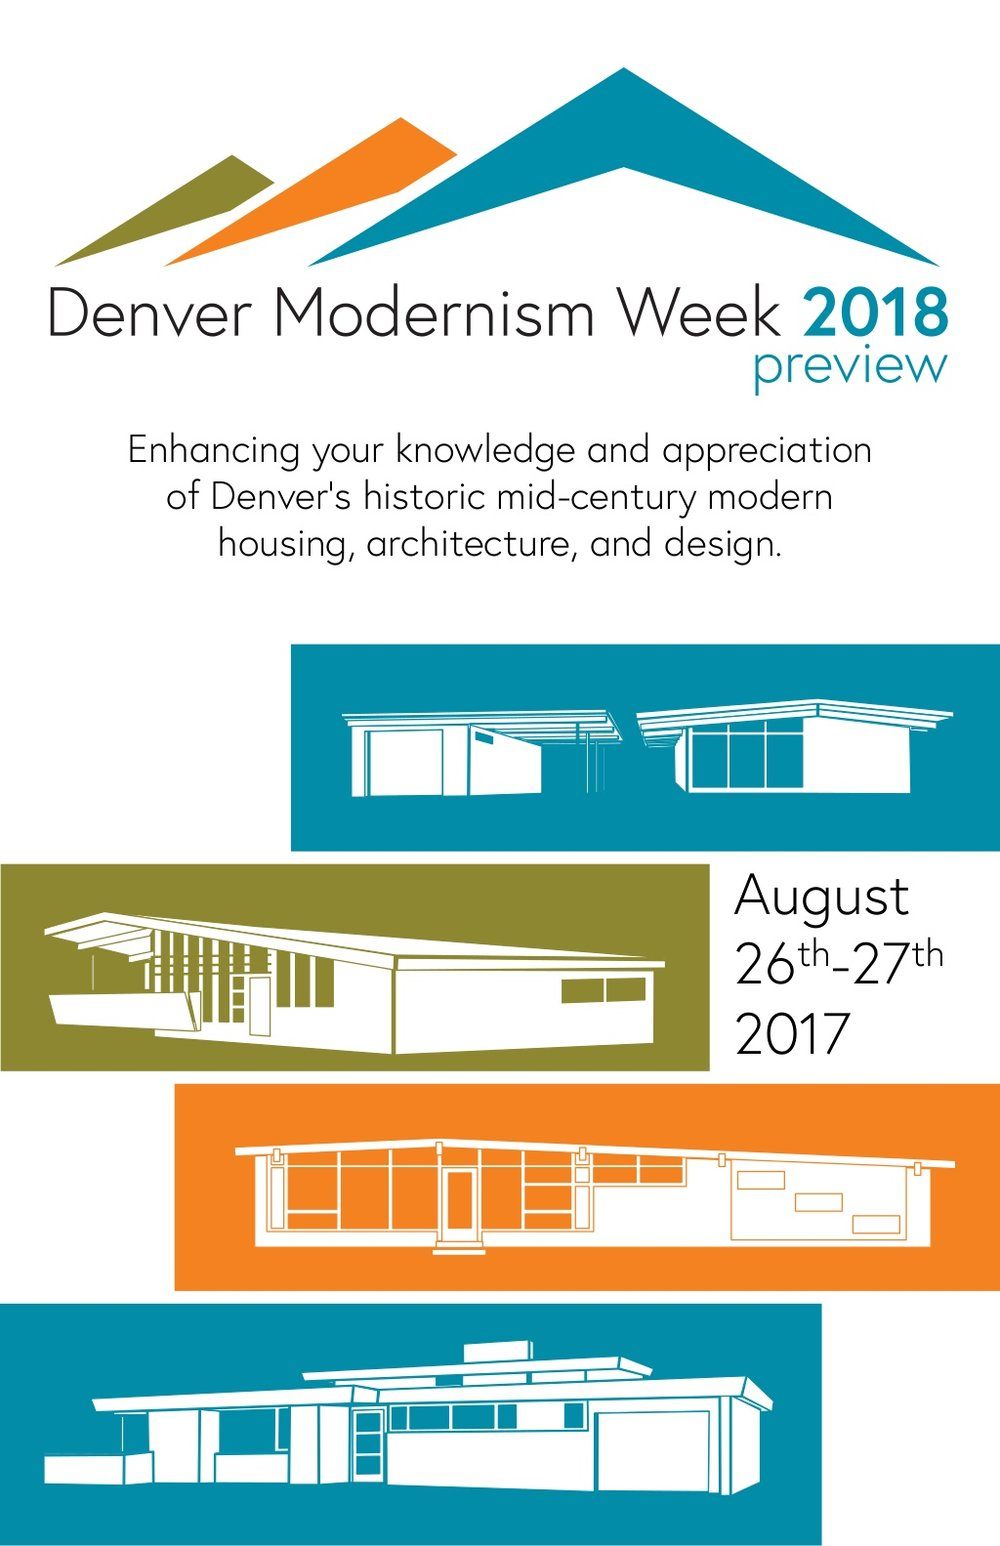 denver-modernism-week-2018-preview-1-1024.jpg